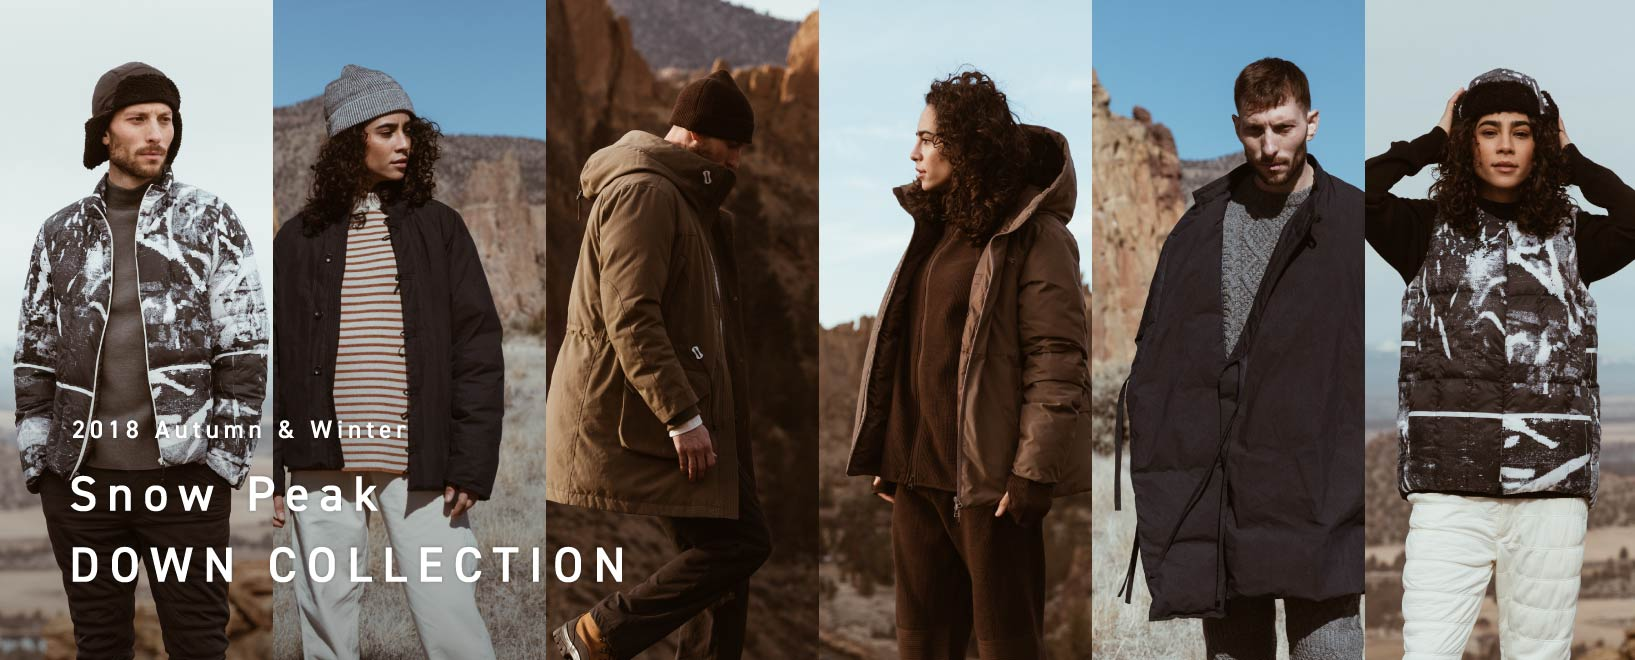 DOWN COLLECTION